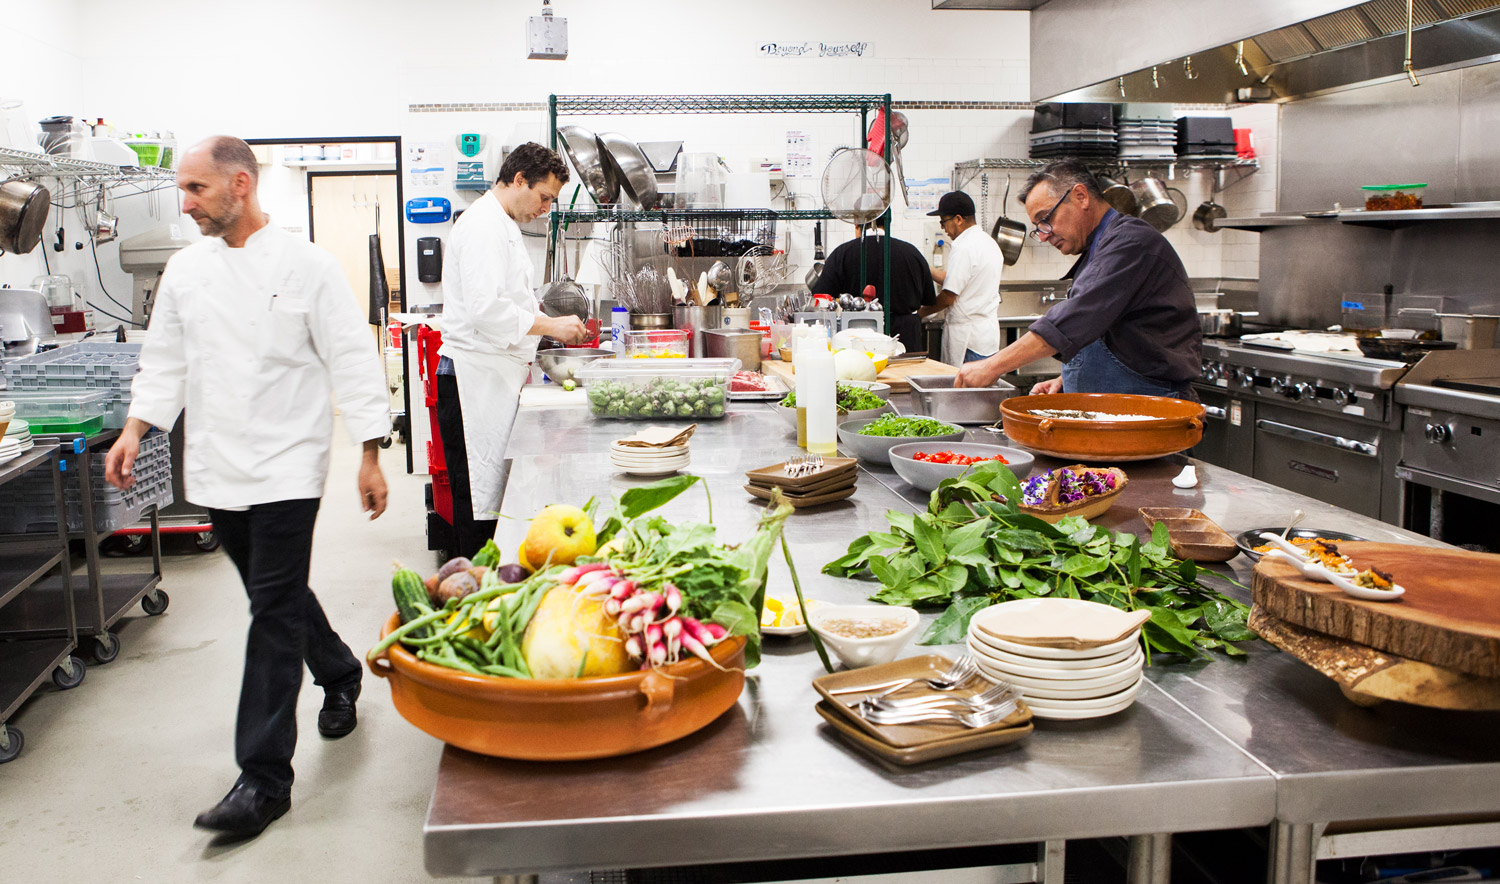 """Chef Ed Vigil (far right) prepares a few """"delicious bites"""" as Chef Arnon Oren goes out to usher the night's Anaviv's Table guests into the kitchen."""